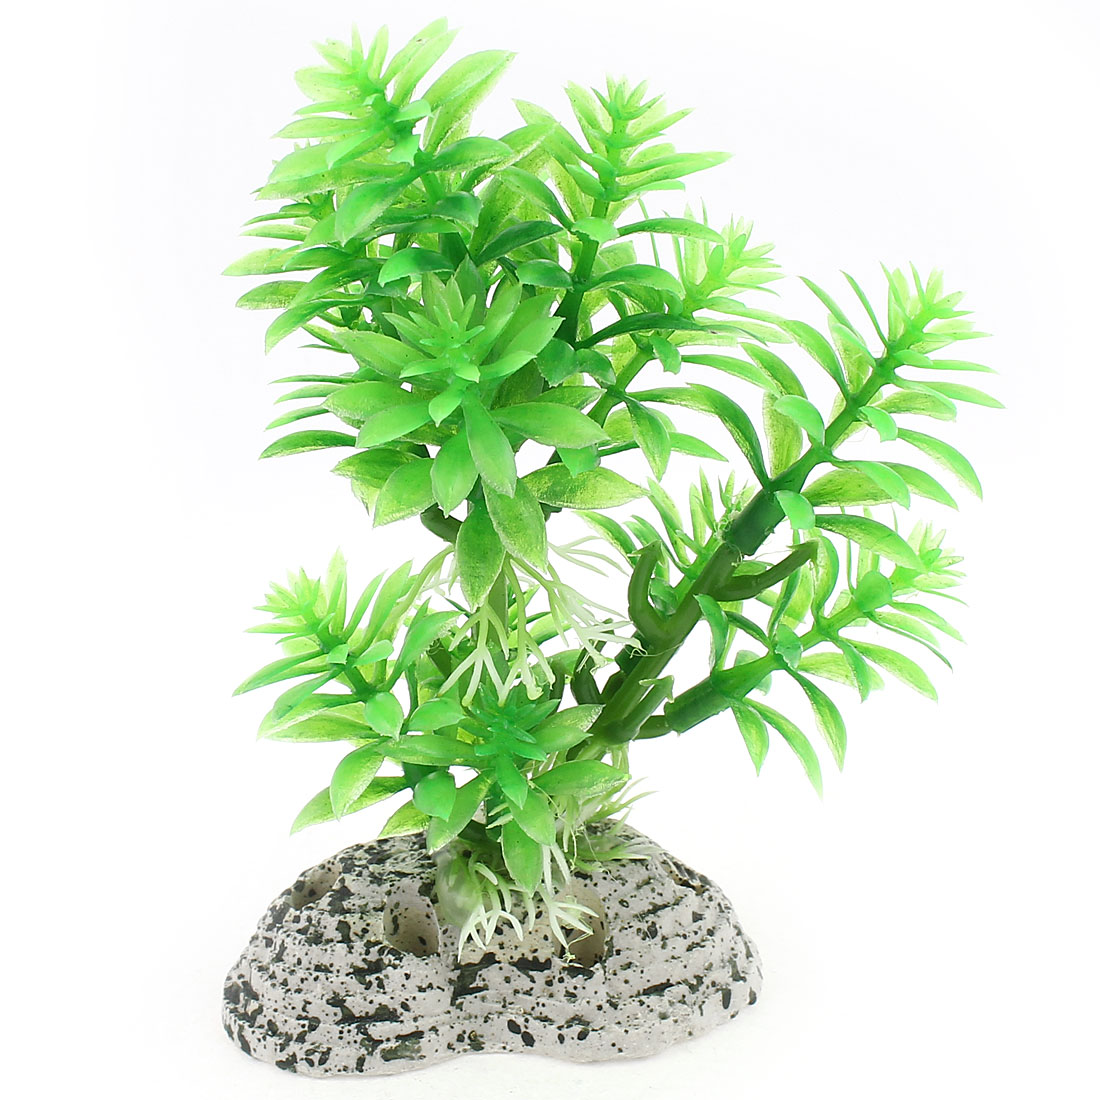 12cm Height Artificial Plastic Green Grass Plant for Fish Tank